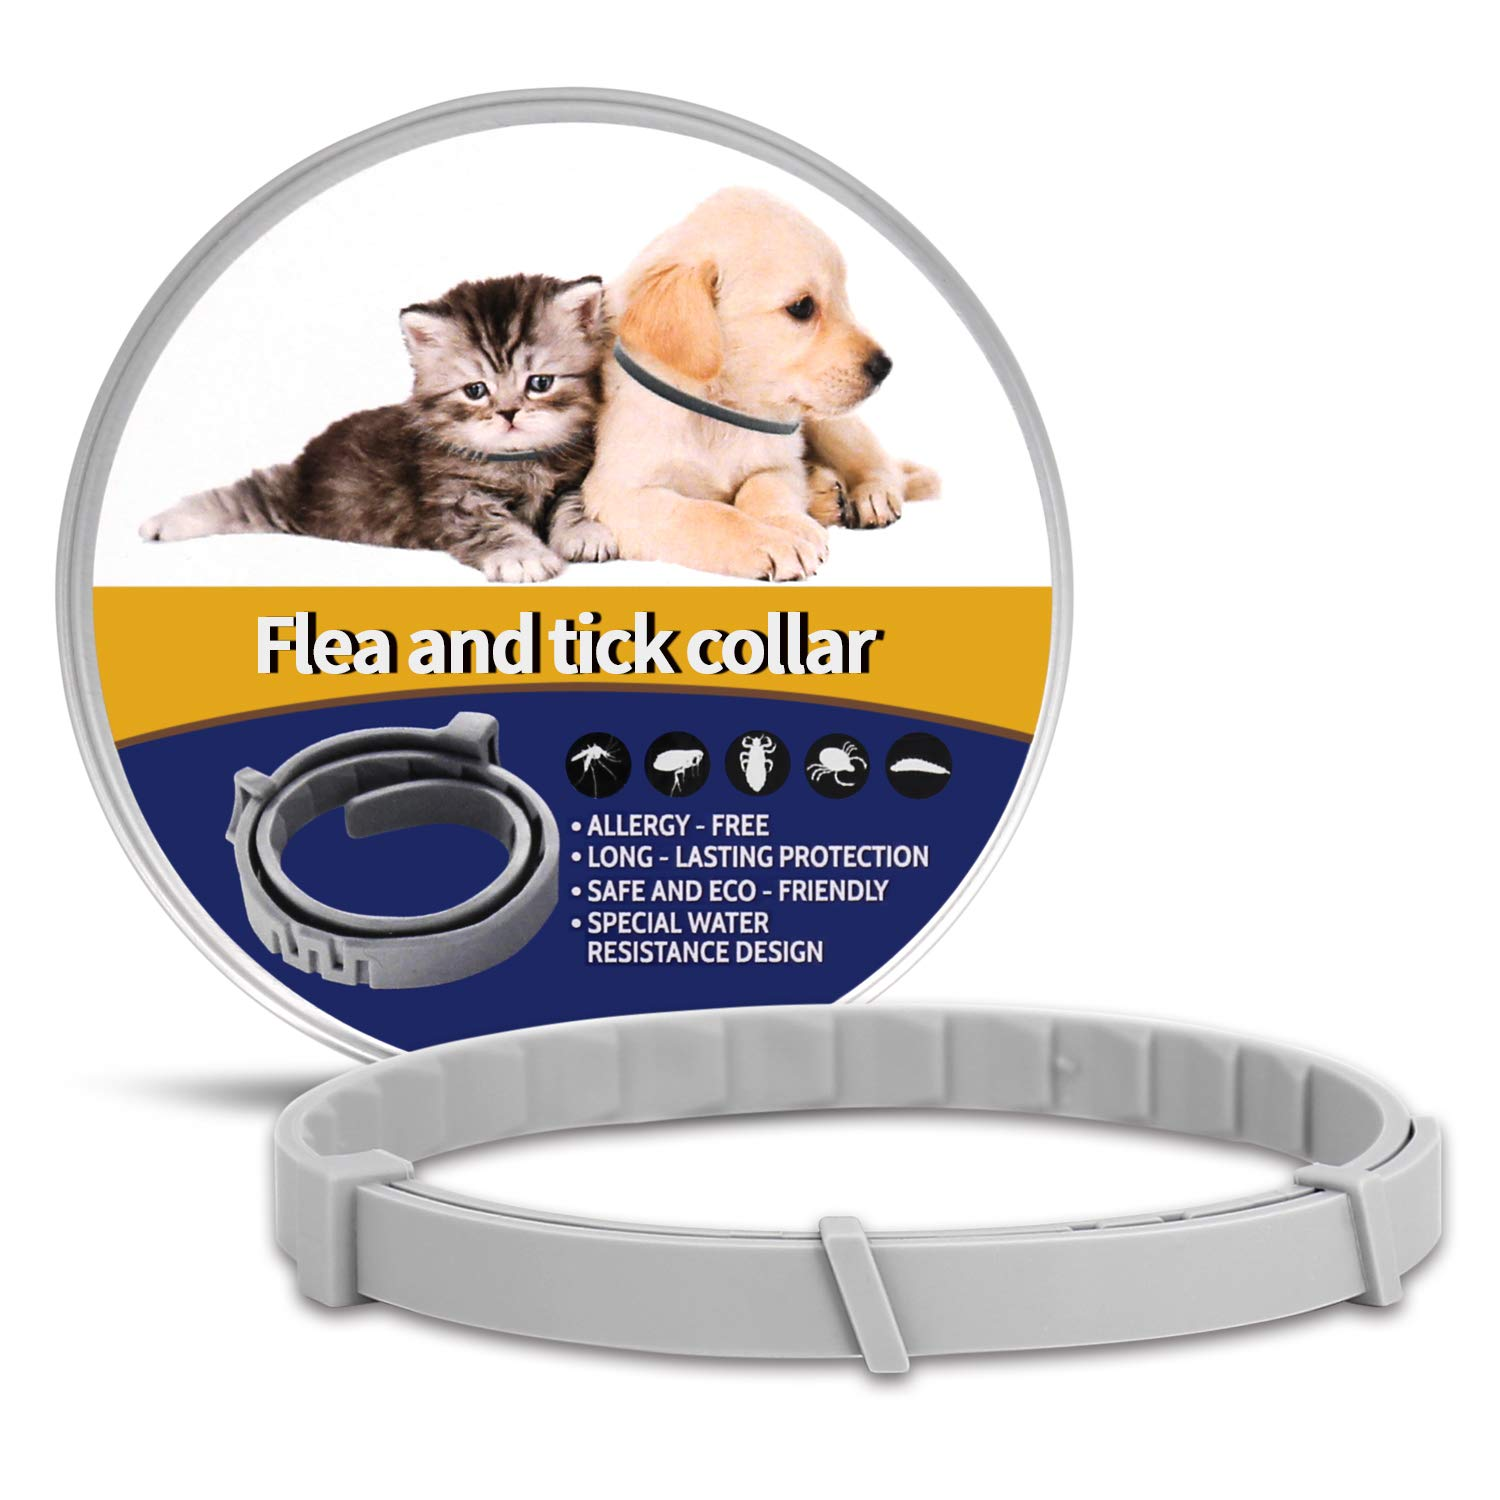 OSKIDE Pet Collar for Cats, Dog Collar Adjustable Waterproof - Safe - 12 Months Protection for The Cat and Dog Control Collar by OSKIDE